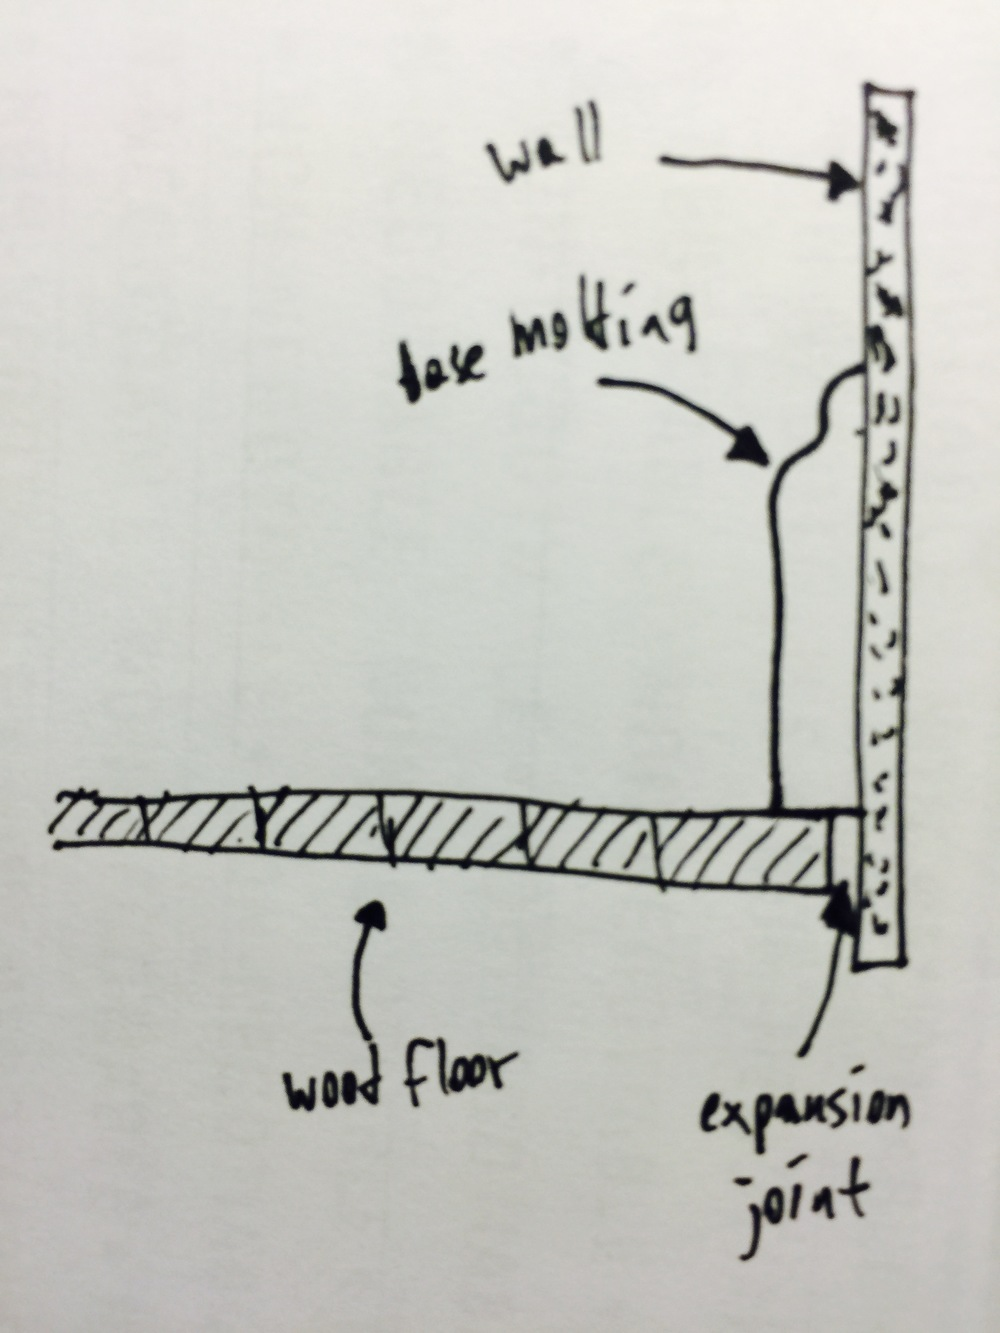 Figure 1: Base molding sits on top of the floor and covers the expansion joint.